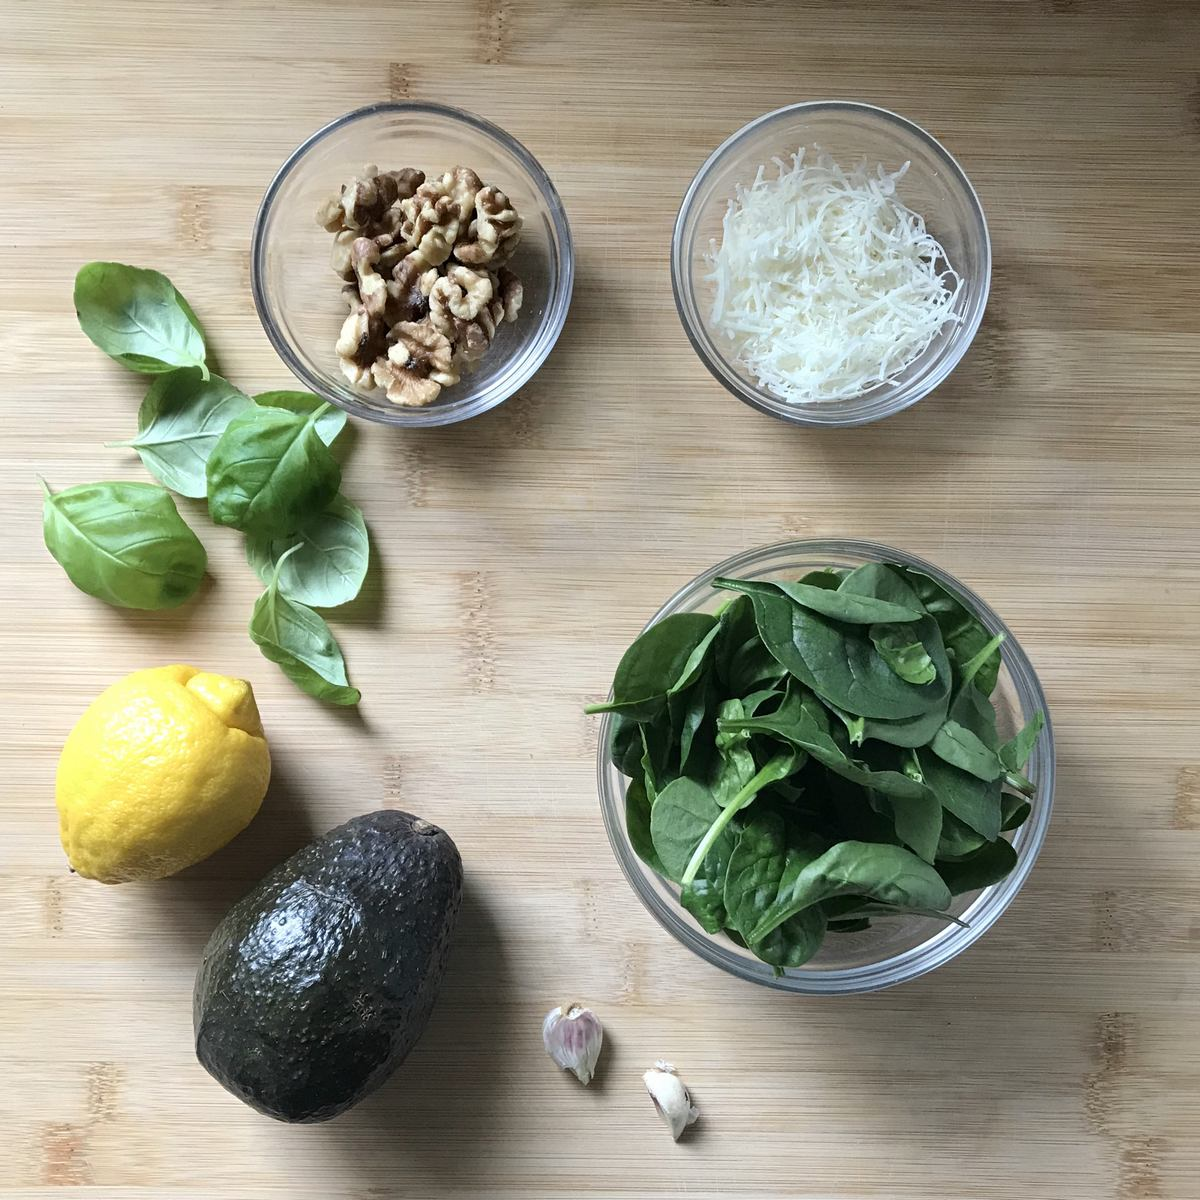 The ingredints to make the avocado pesto on a wooden board.